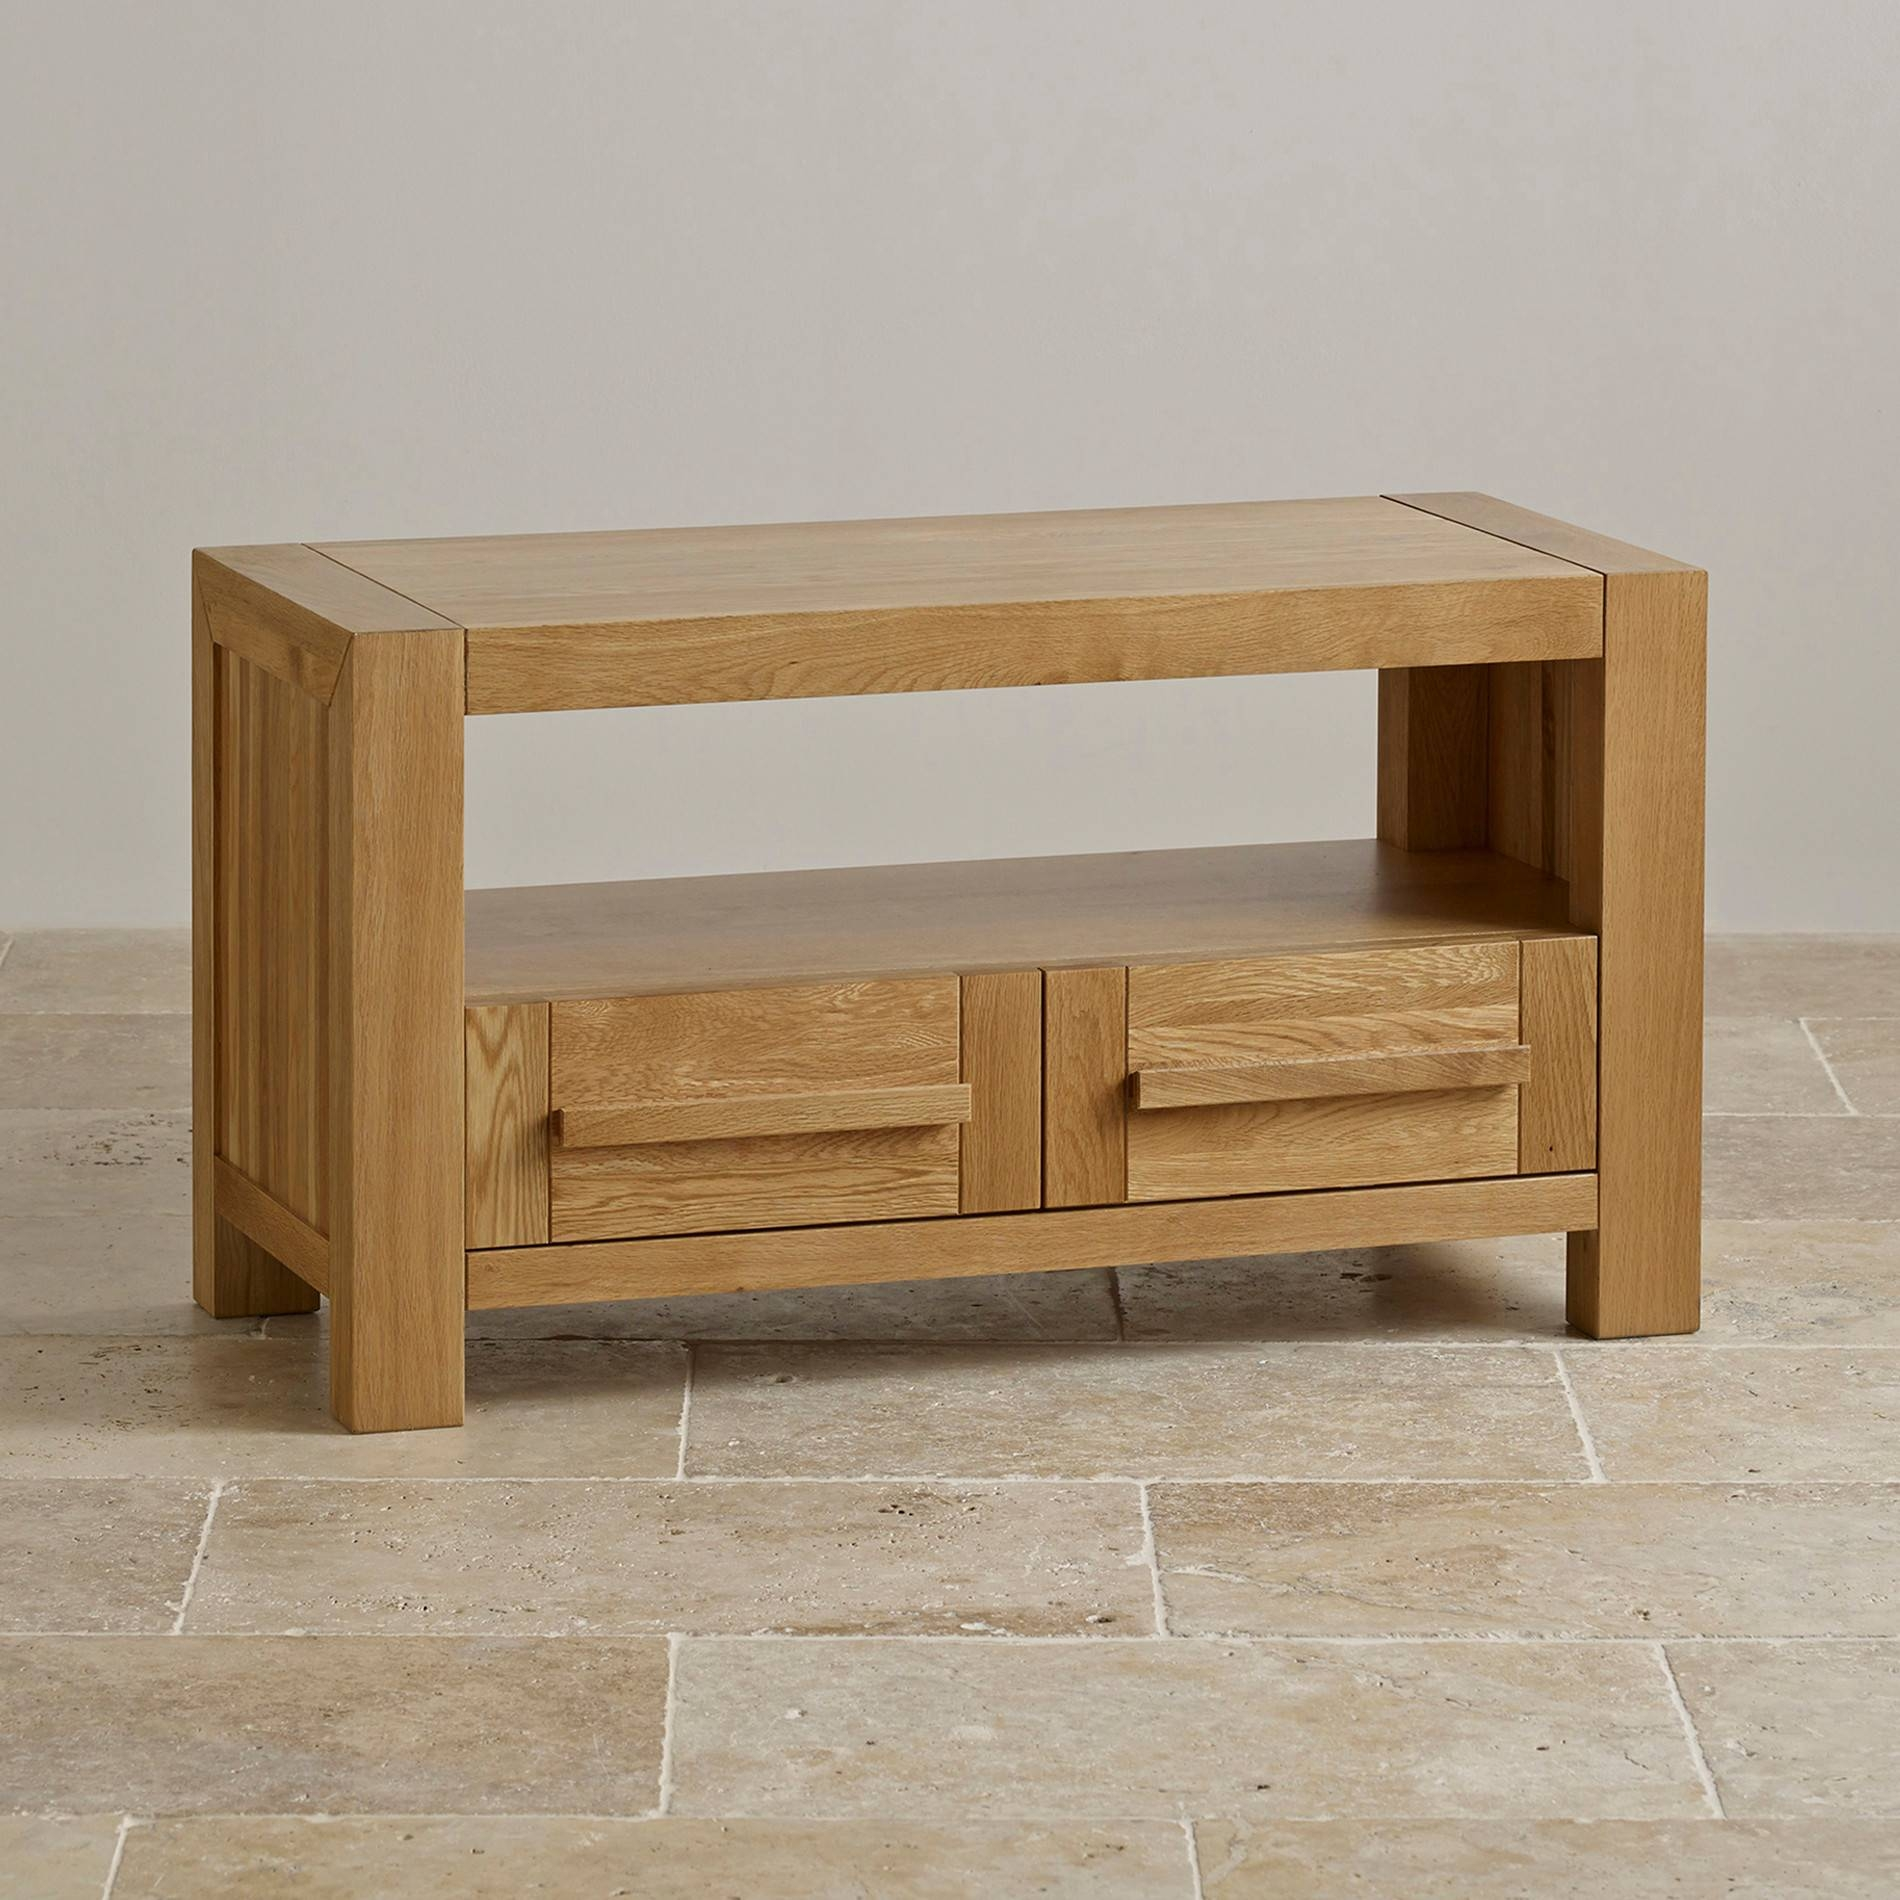 Fresco 2 Drawer Tv Cabinet In Solid Oak | Oak Furniture Land throughout Oak Tv Cabinets (Image 3 of 15)